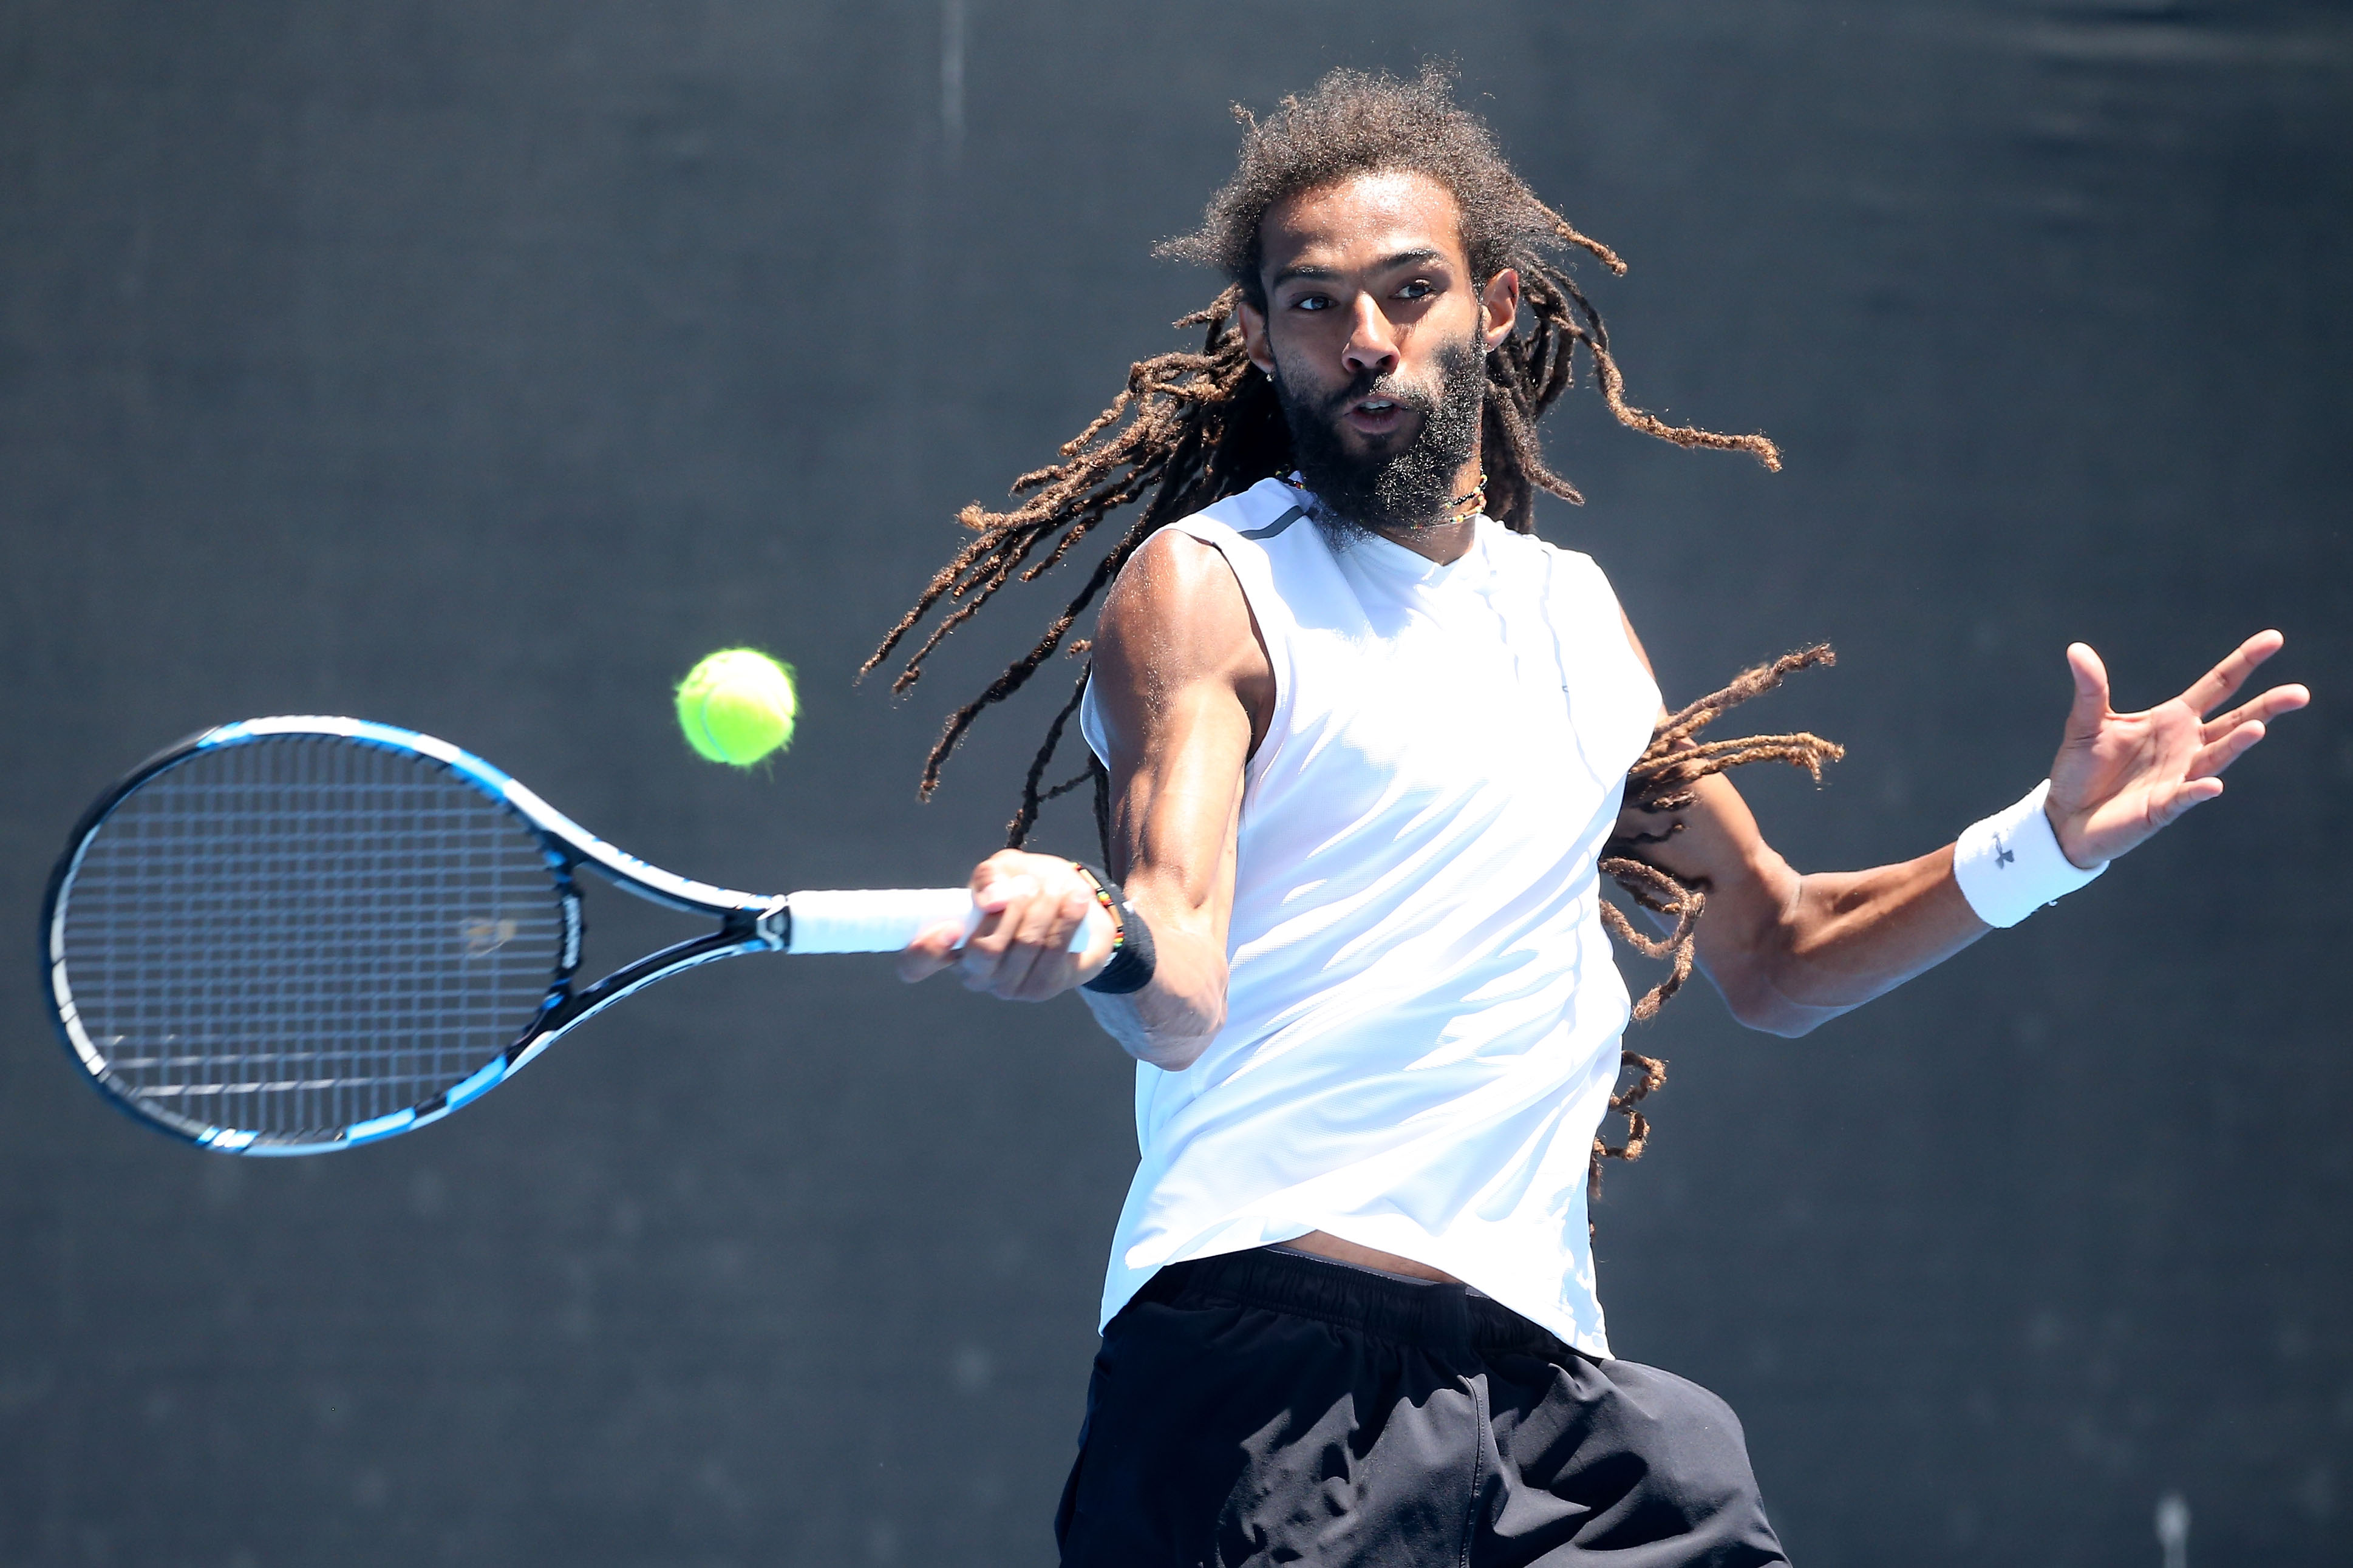 MELBOURNE, AUSTRALIA - JANUARY 19:  Dustin Brown of Germany plays a forehand in his first round doubles match with Albert Ramos-Vinolas of Spain against Nenad Zimonjic and Mischa Zverev on day four of the 2017 Australian Open at Melbourne Park on January 19, 2017 in Melbourne, Australia.  (Photo by Pat Scala/Getty Images)